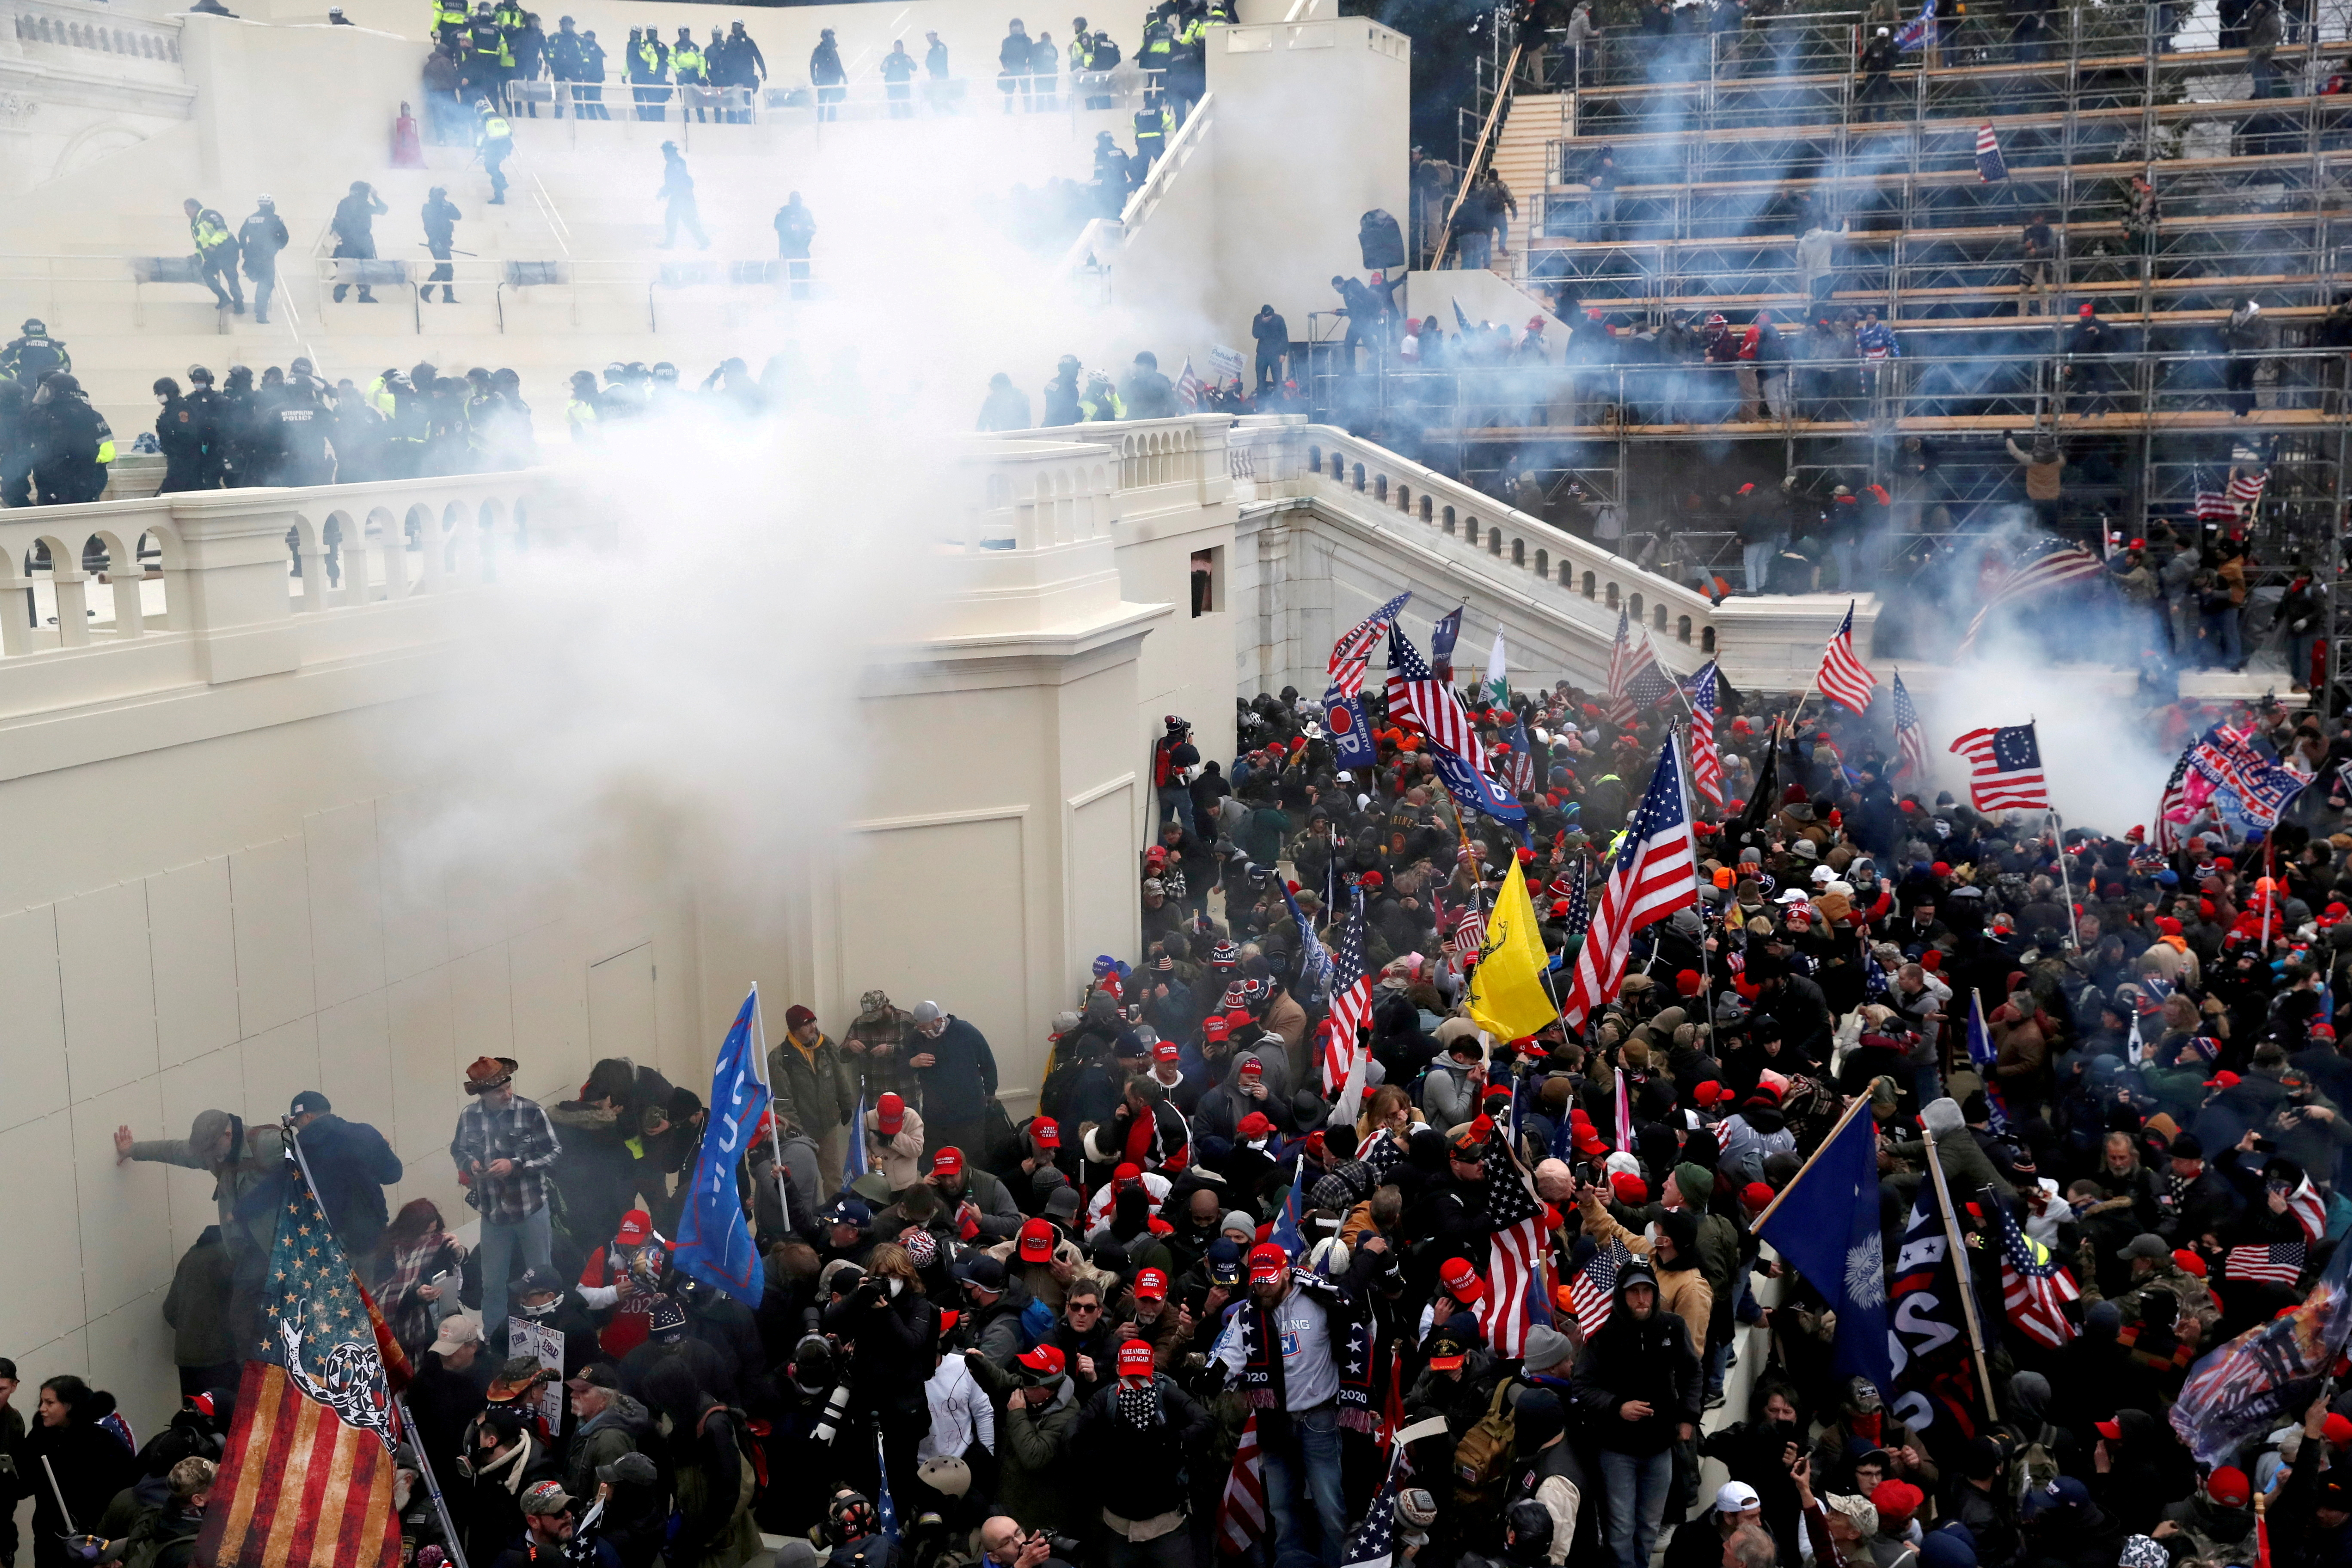 Police release tear gas into a crowd of pro-Trump protesters during clashes at a rally to contest the certification of the 2020 U.S. presidential election results by the U.S. Congress, at the U.S. Capitol Building in Washington, U.S, January 6, 2021. REUTERS/Shannon Stapleton